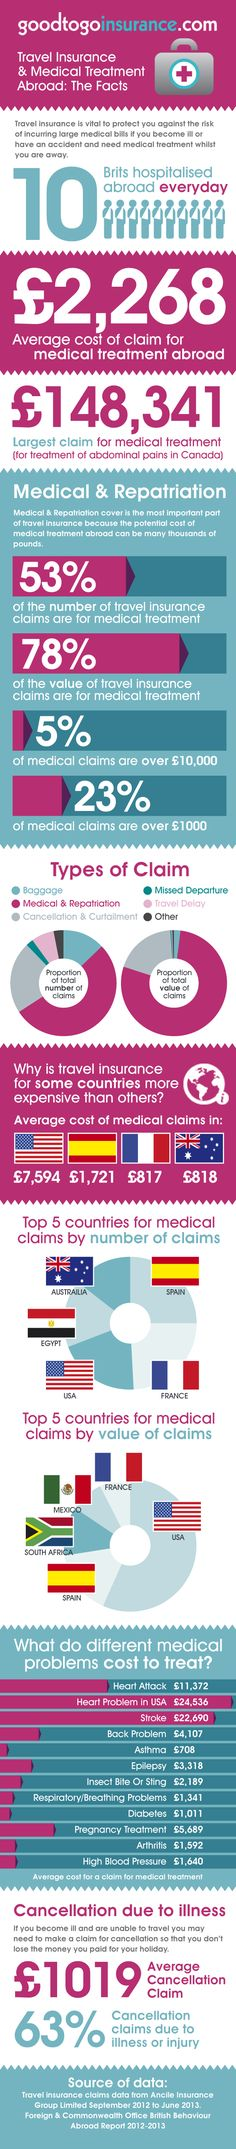 Travel insurance and medical conditions: What woul. Travel insurance and medical conditions: What would the cost of medical treatment abroad be if you are uninsured?